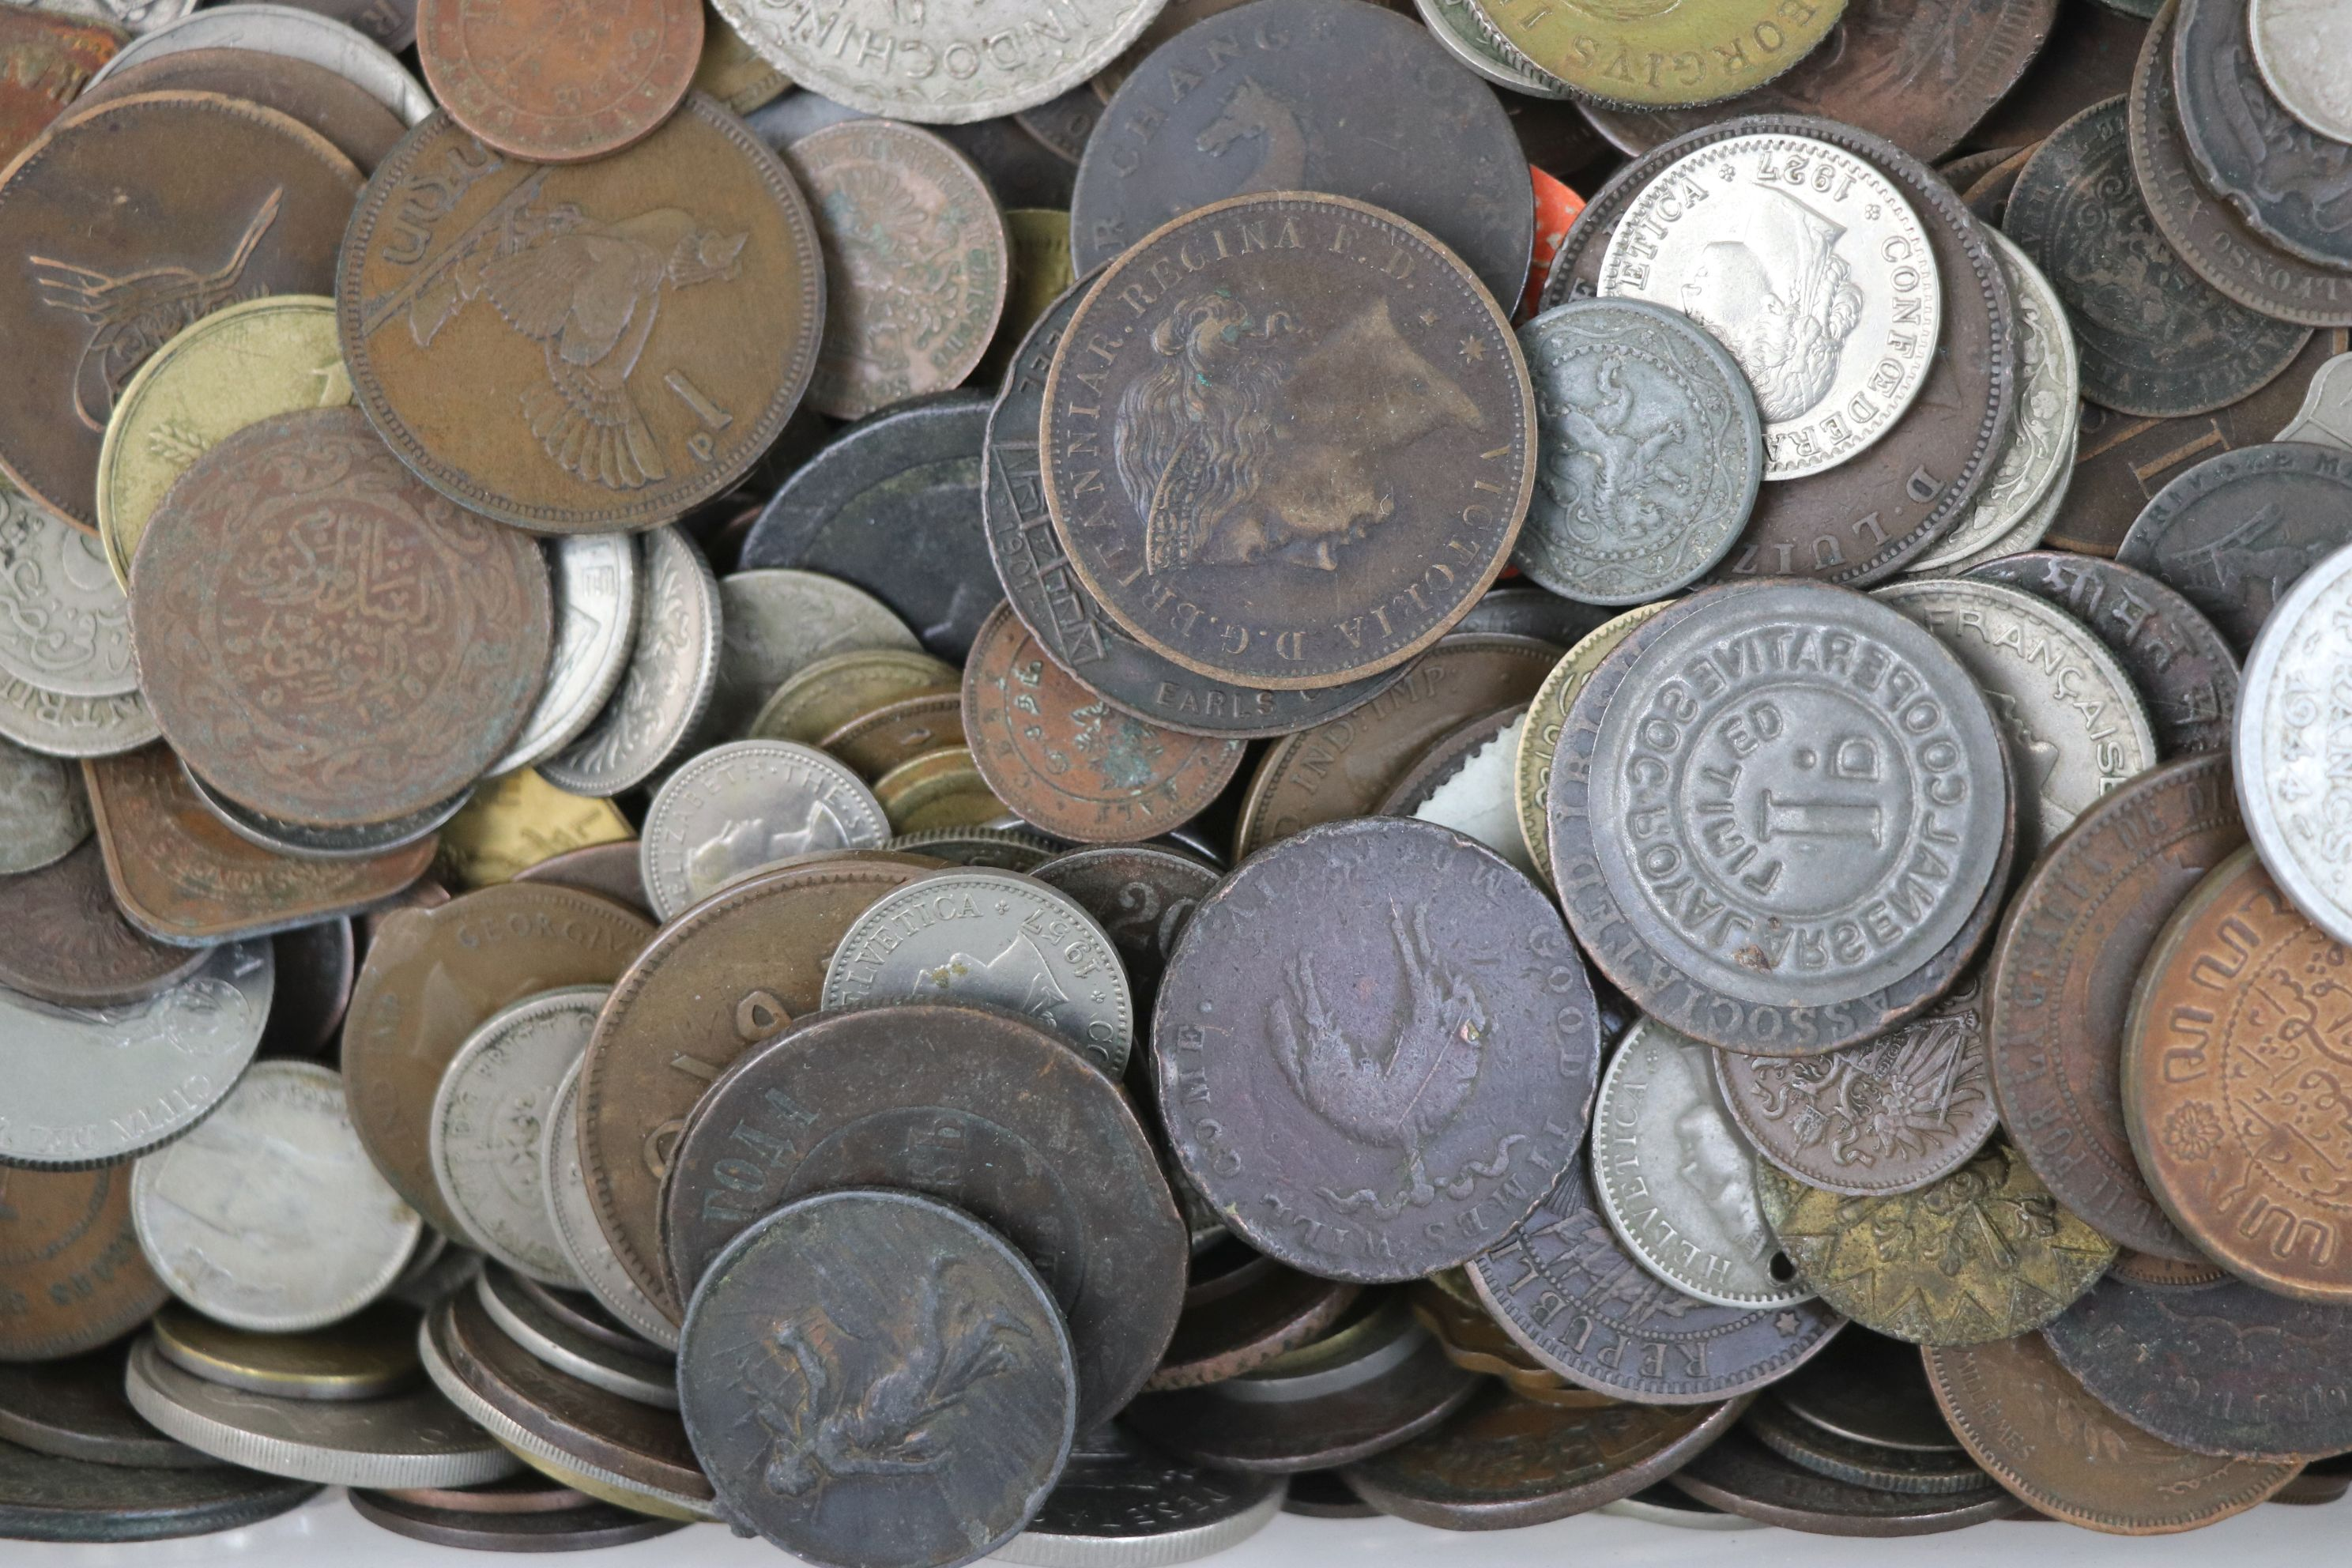 A large collection of British and World coins to include silver examples. - Image 7 of 10